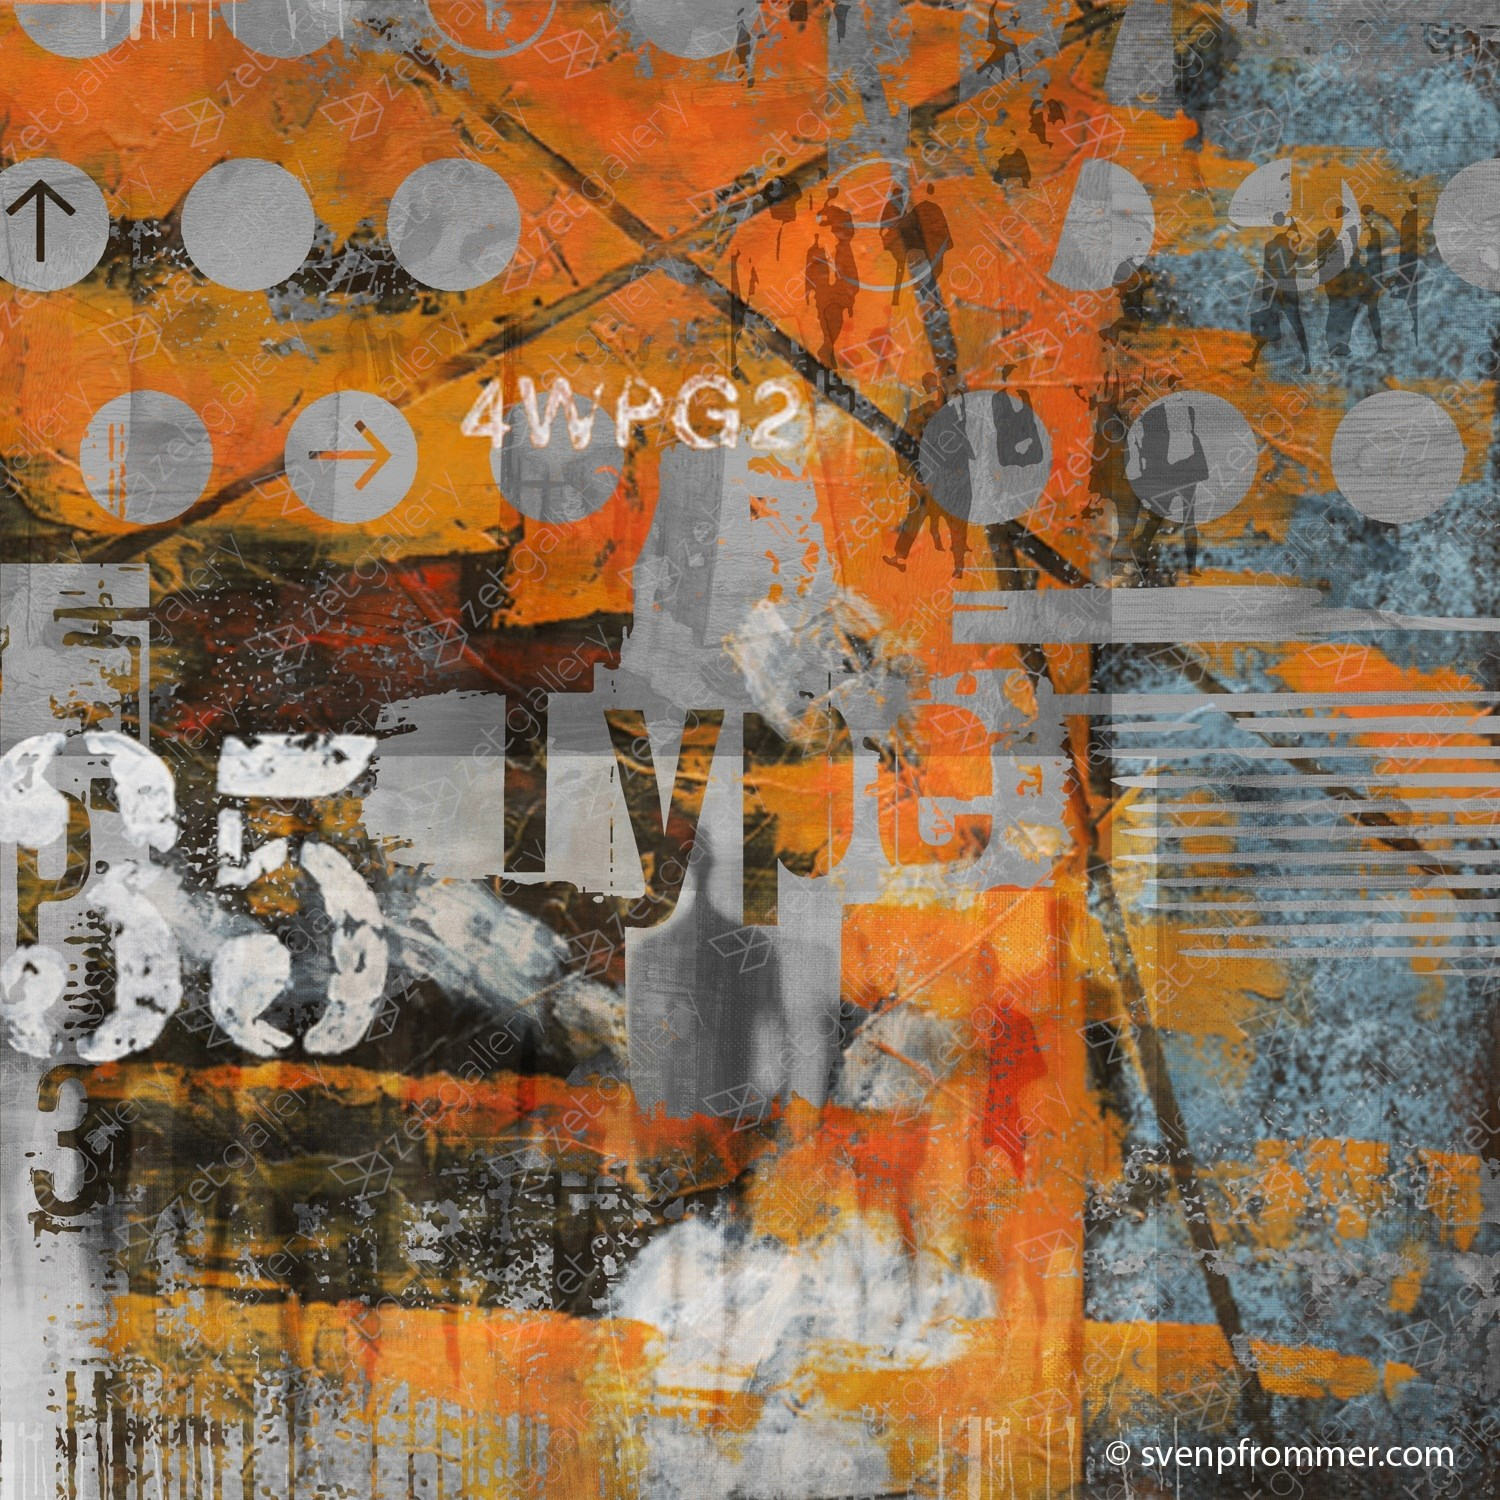 MOVE ON 56, original Abstract Digital Photography by Sven Pfrommer